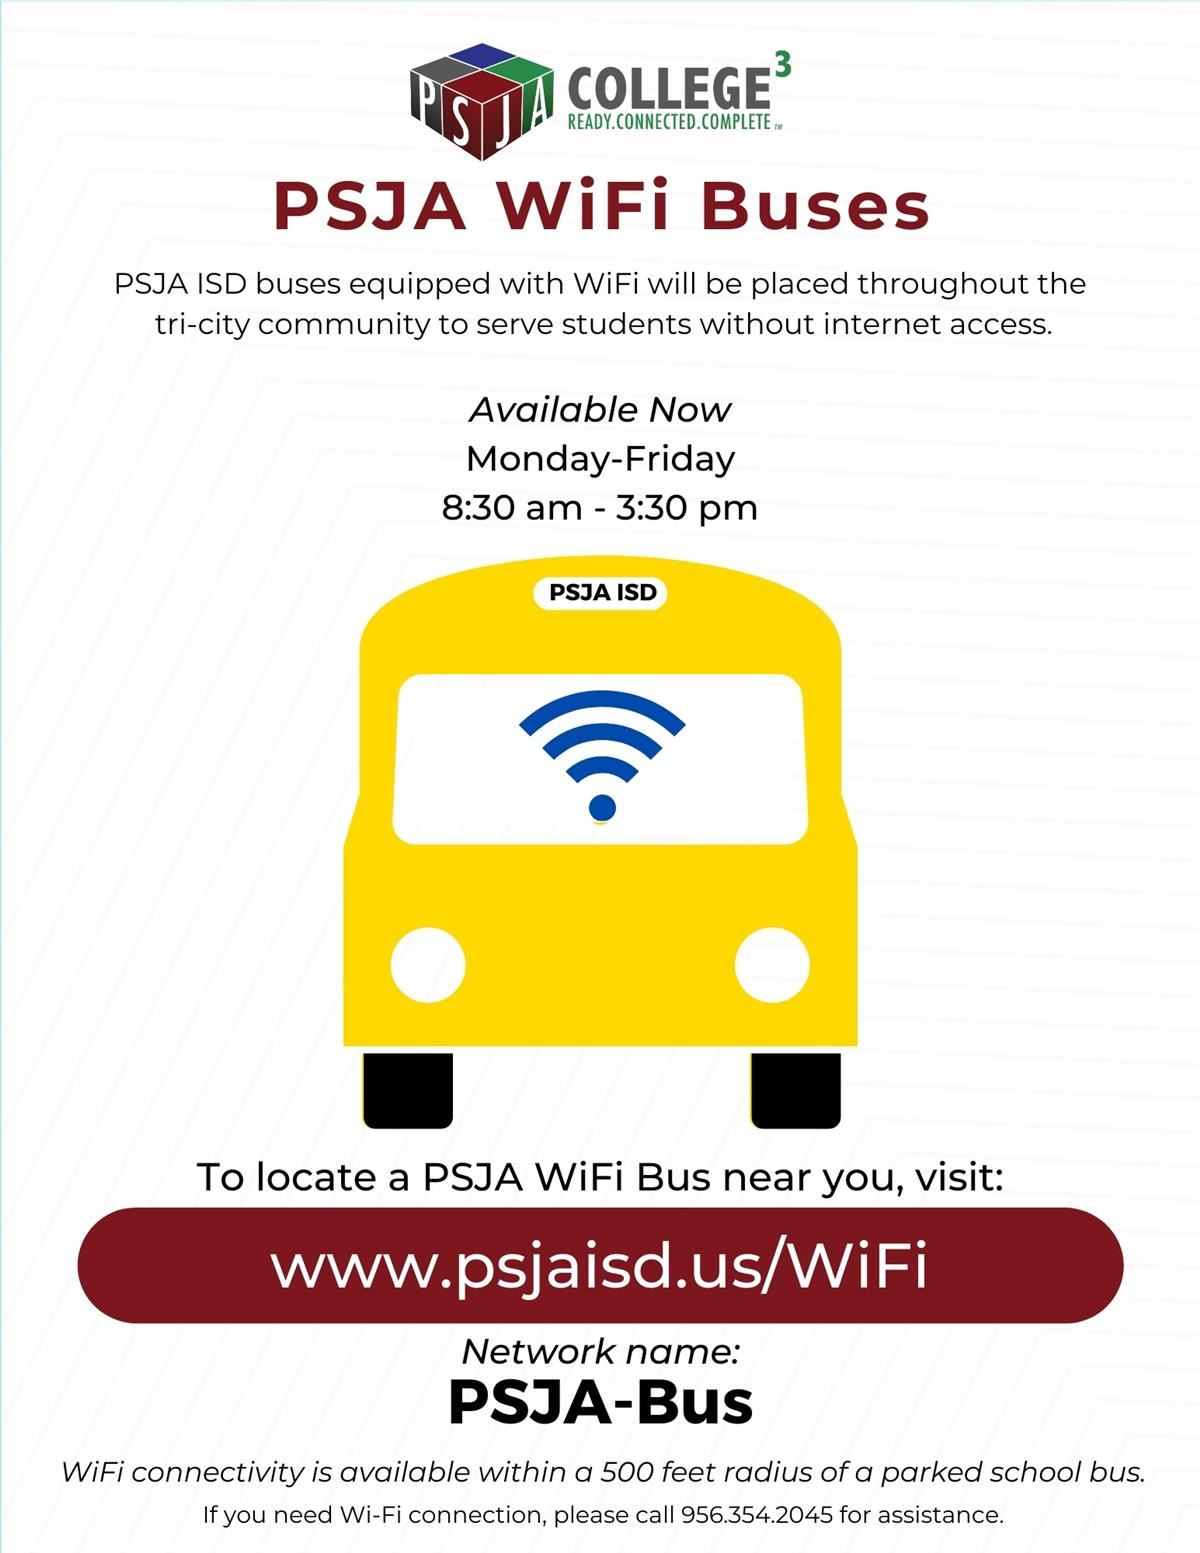 PSJA ISD WiFi buses are now available!